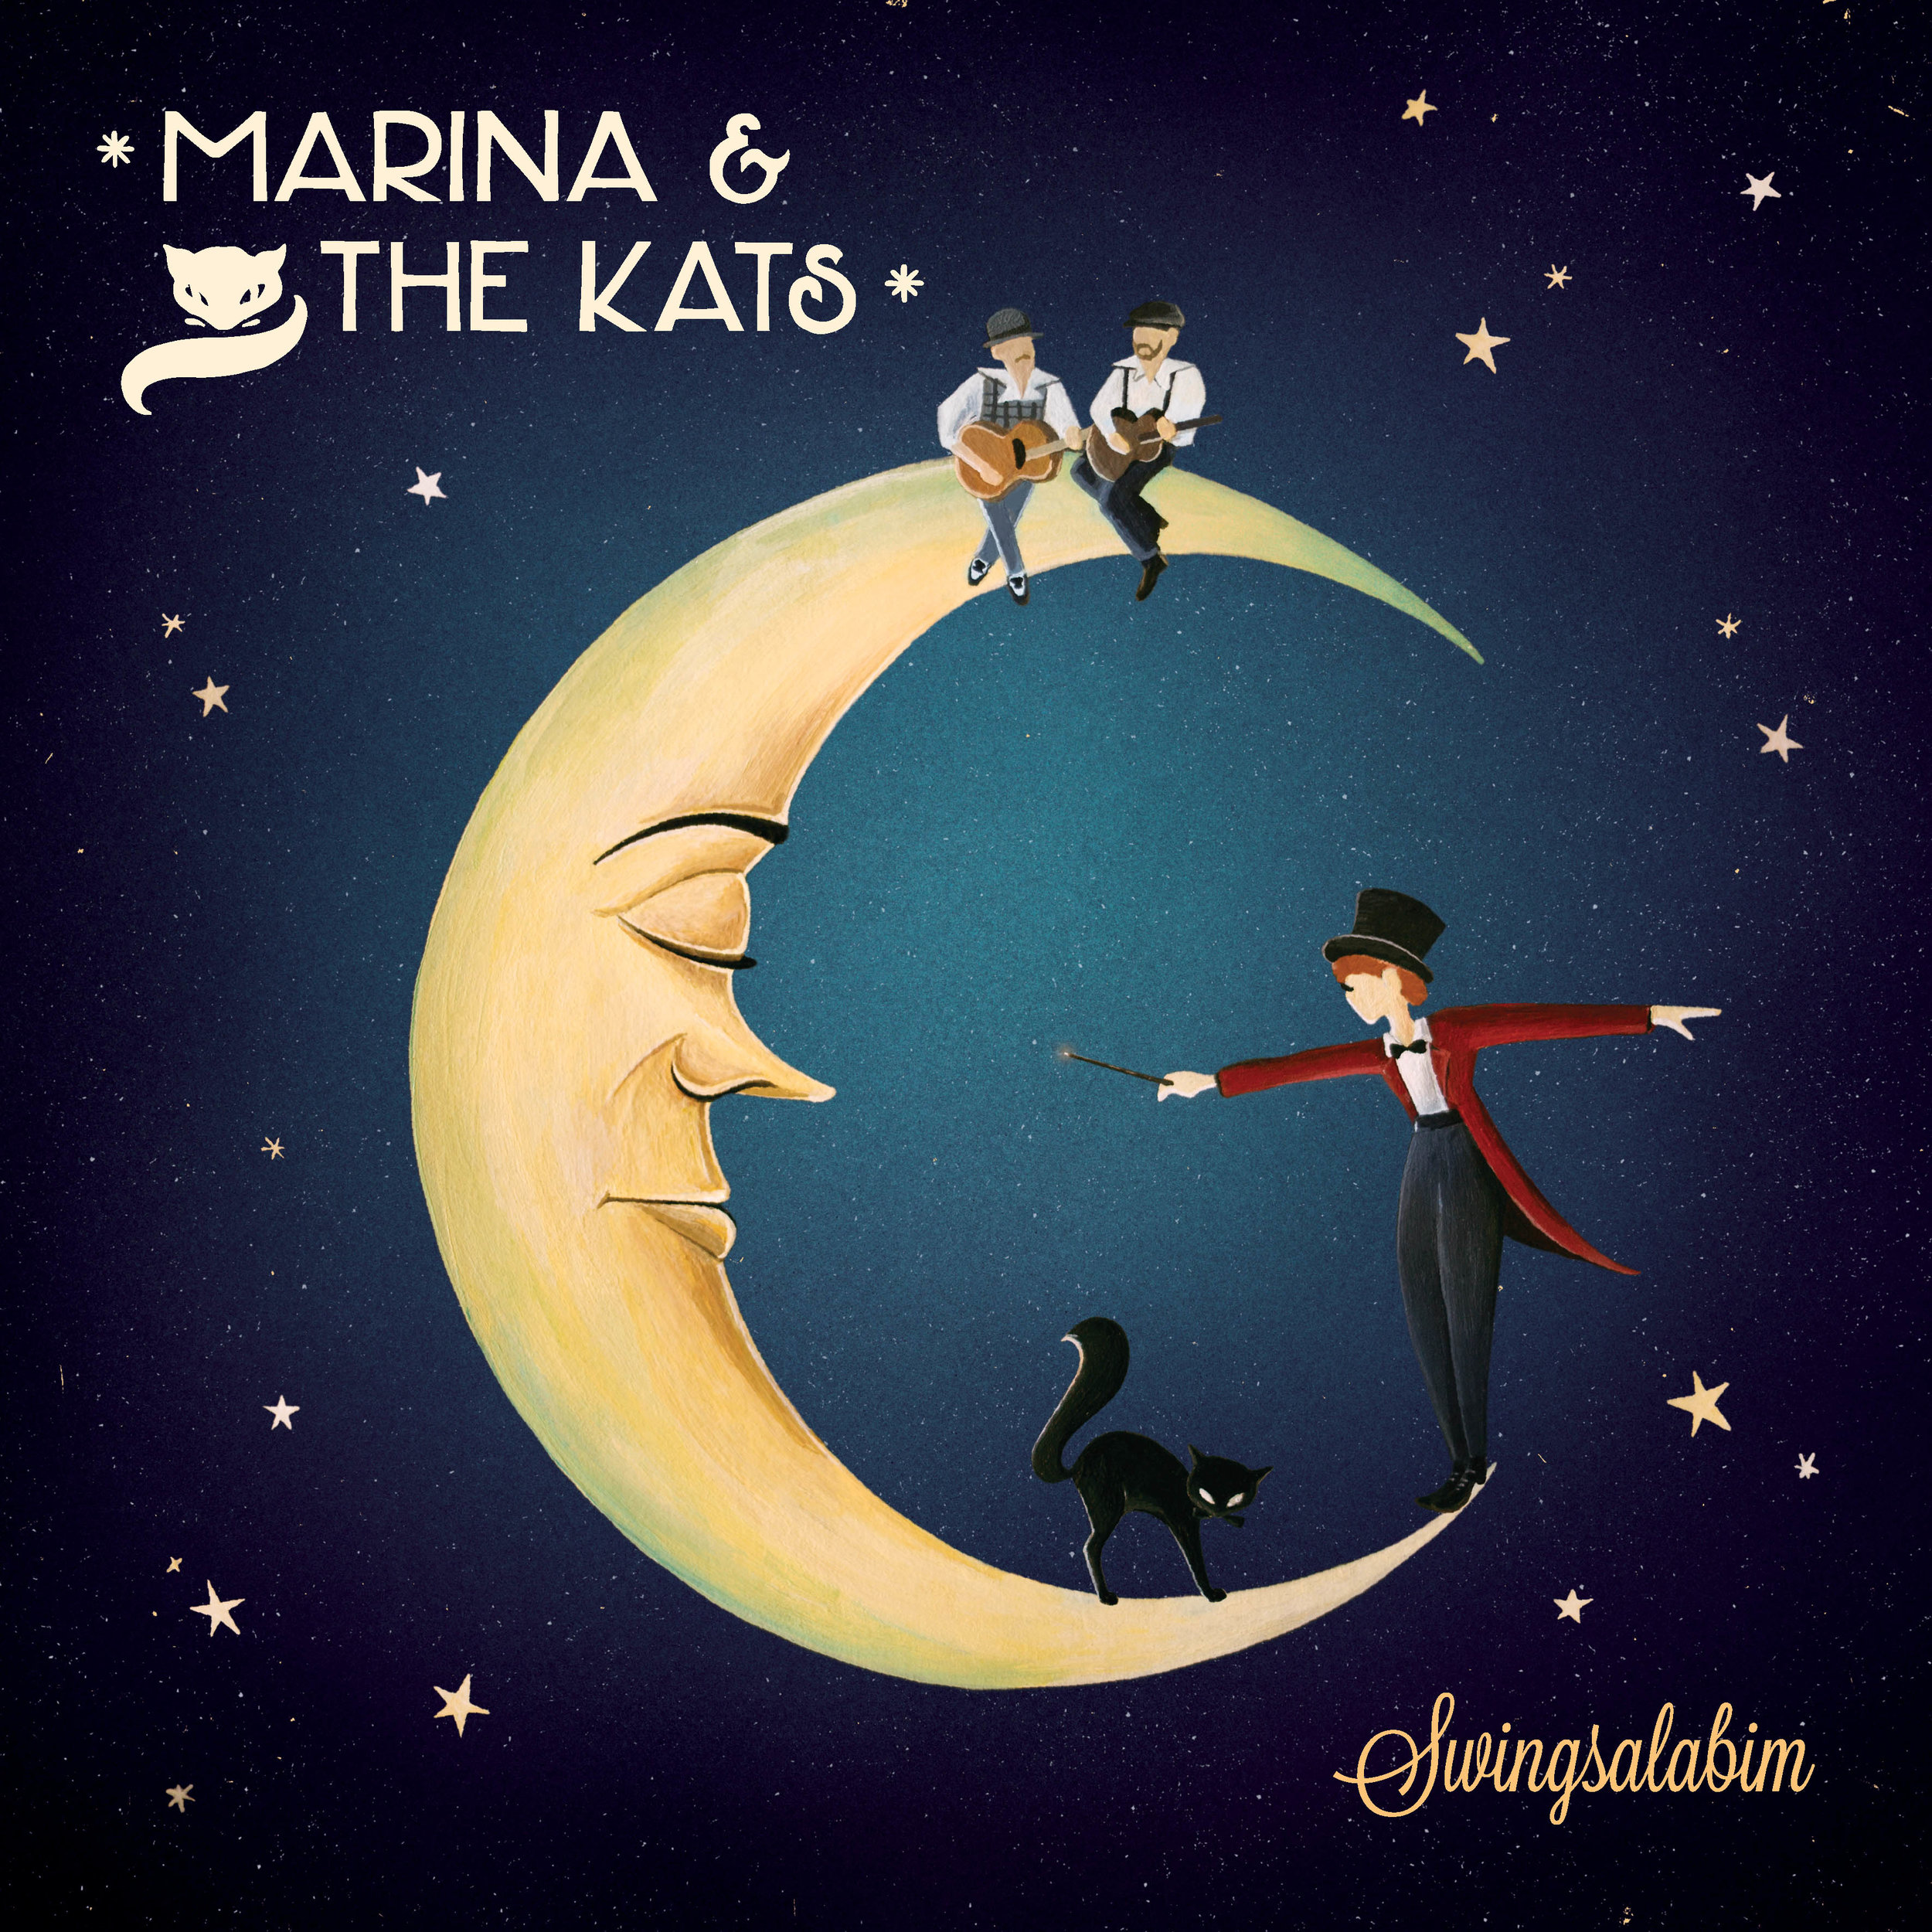 Marina & The Kats - Swingsalabim (2019)